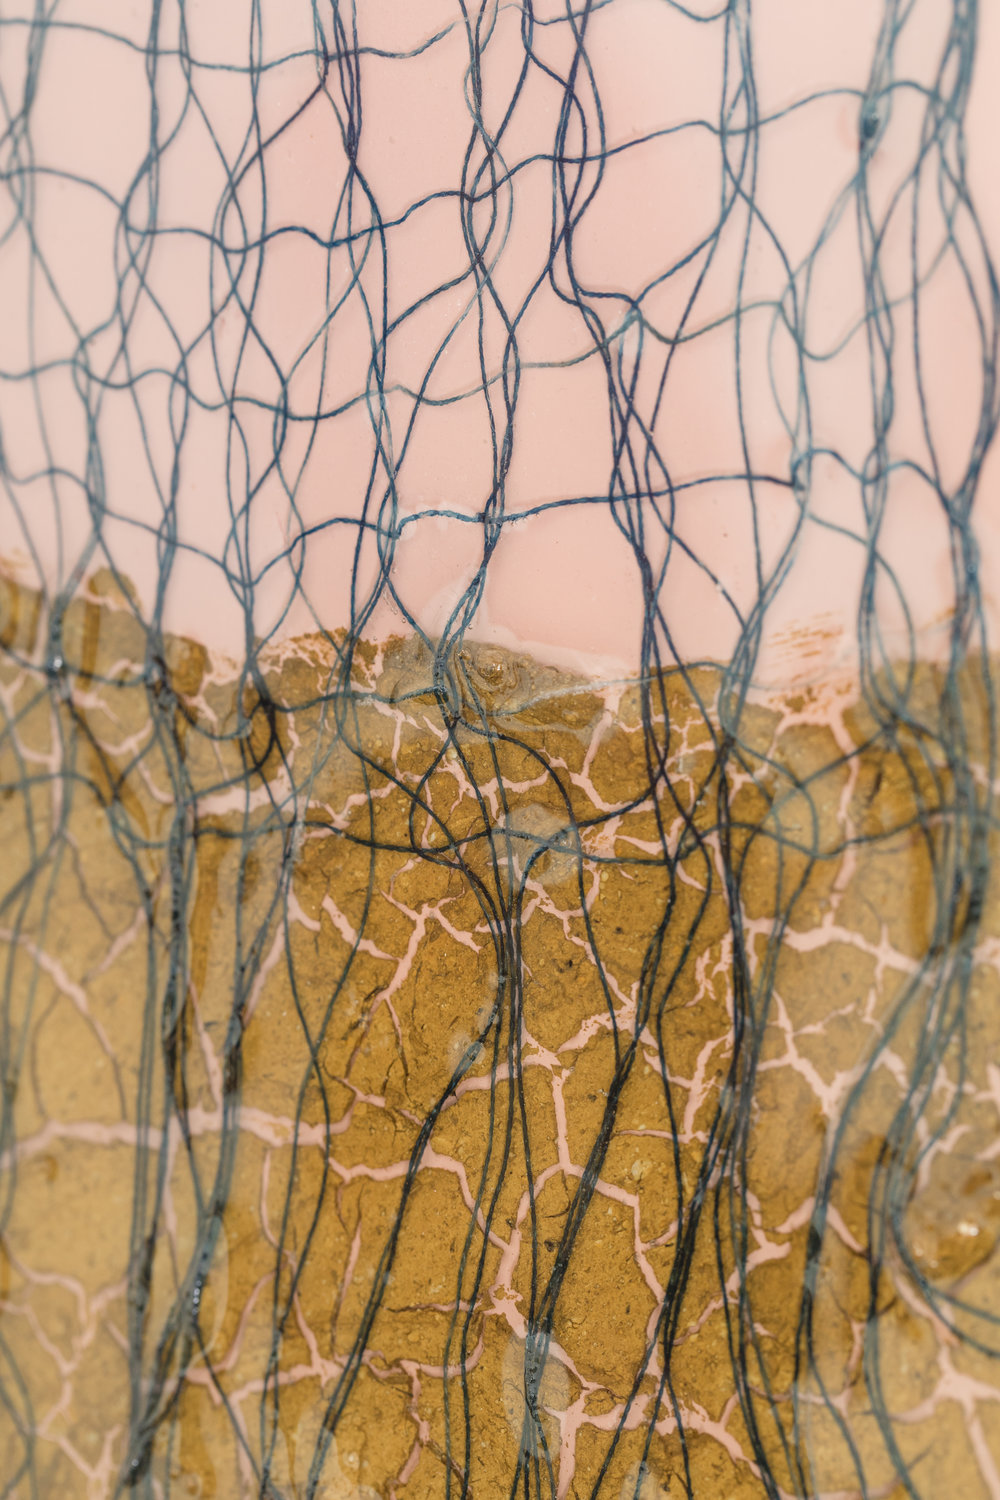 Mojave Sunset (detail)  , 2017, cotton, indigo, sand, spray paint on wood panel, 24 x 30 inches